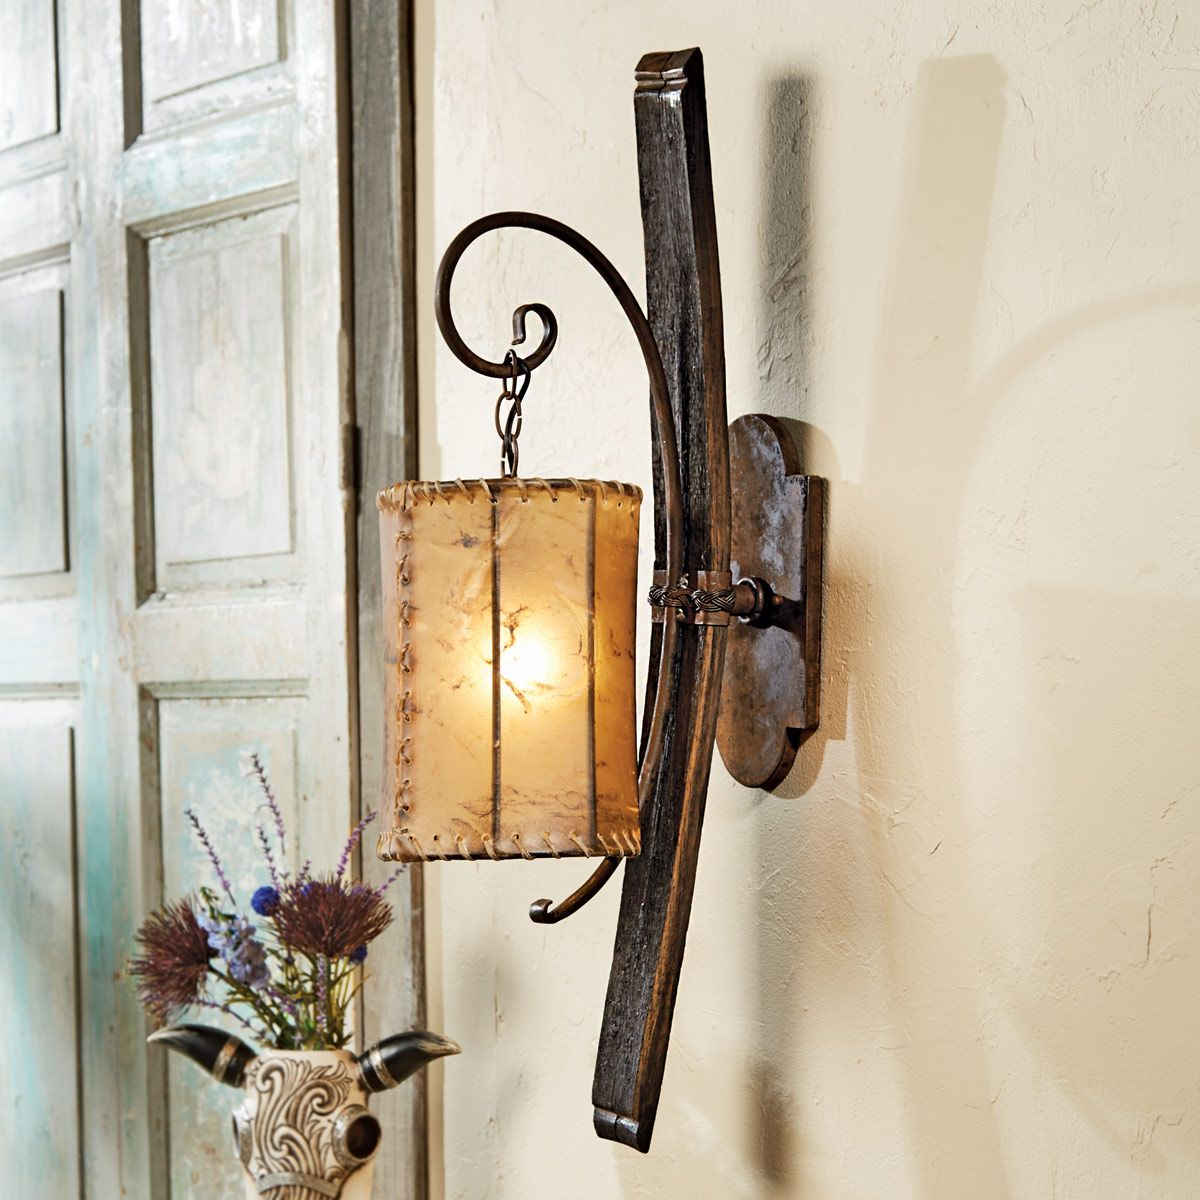 Tequila Barrel Wall Lamp with Rawhide Shade